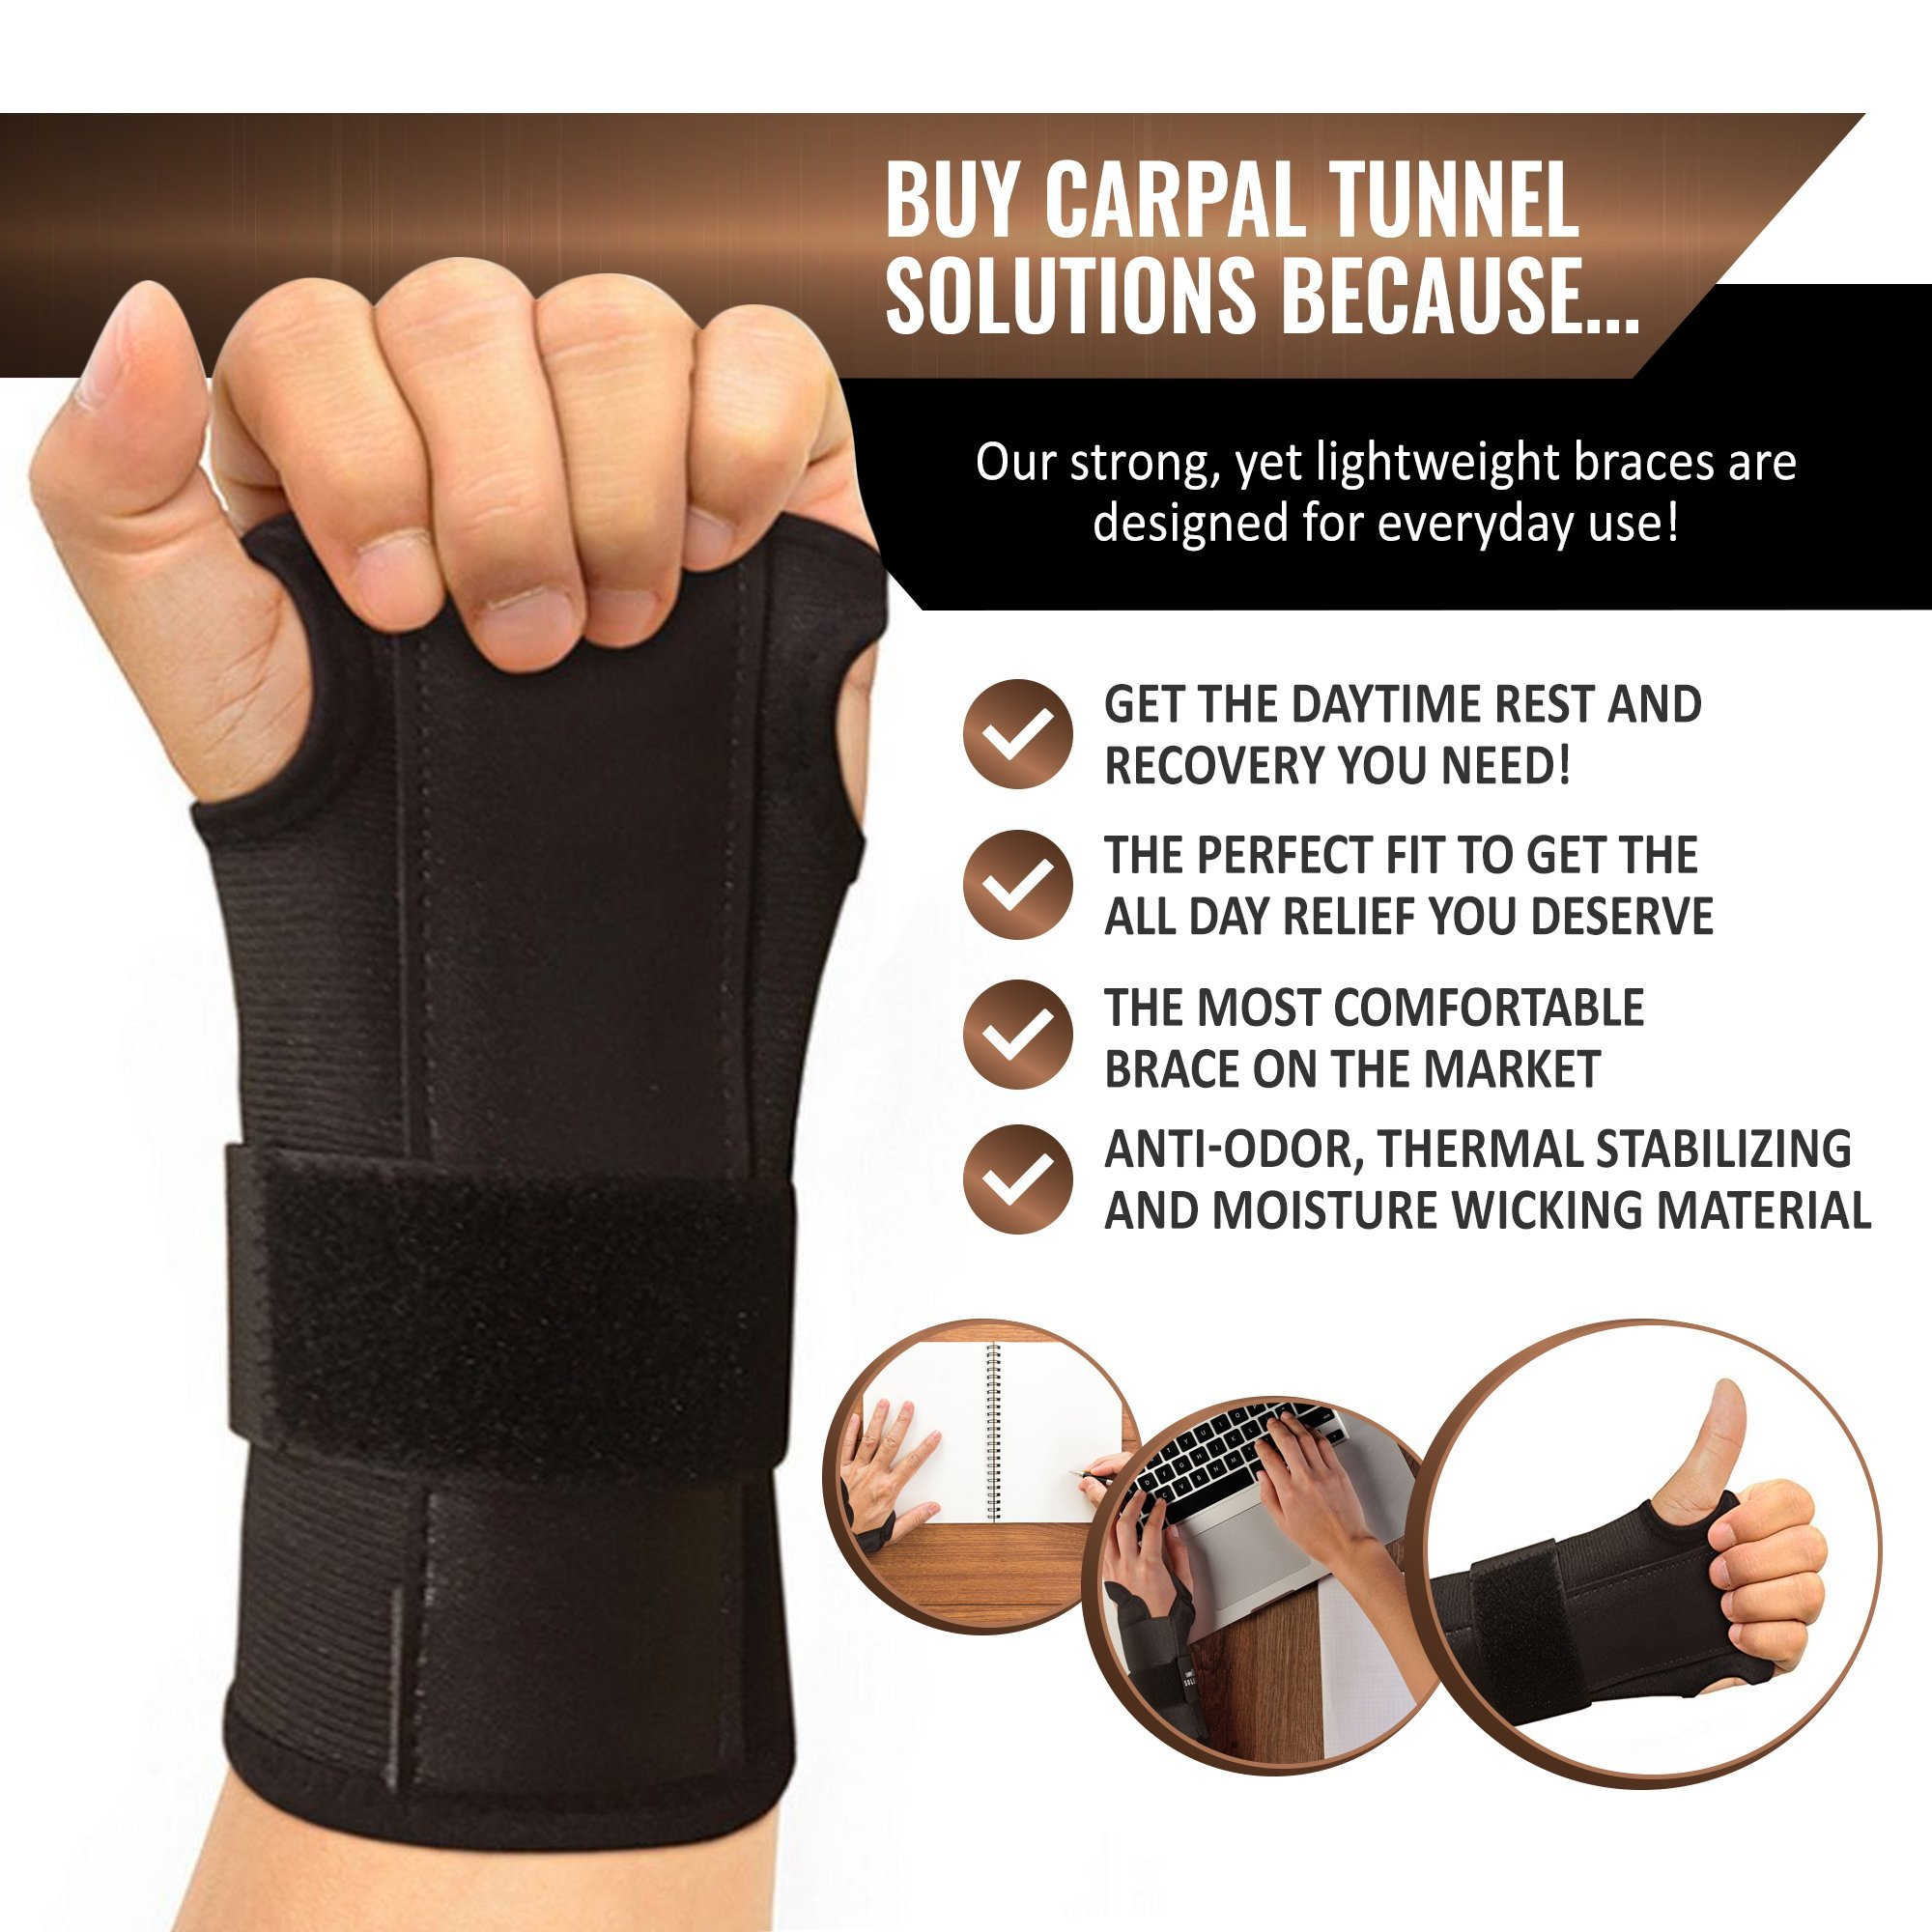 Carpal Tunnel Solutions Daytime Wrist Brace - RELIEF For Carpal Tunnel, RSI, Cubital Tunnel, Tendonitis, Arthritis, Wrist Sprains. Support Recovery & Feel Better NOW. (1 Brace Fits Both Hands) by Carpal Tunnel Wrist Brace (Image #7)